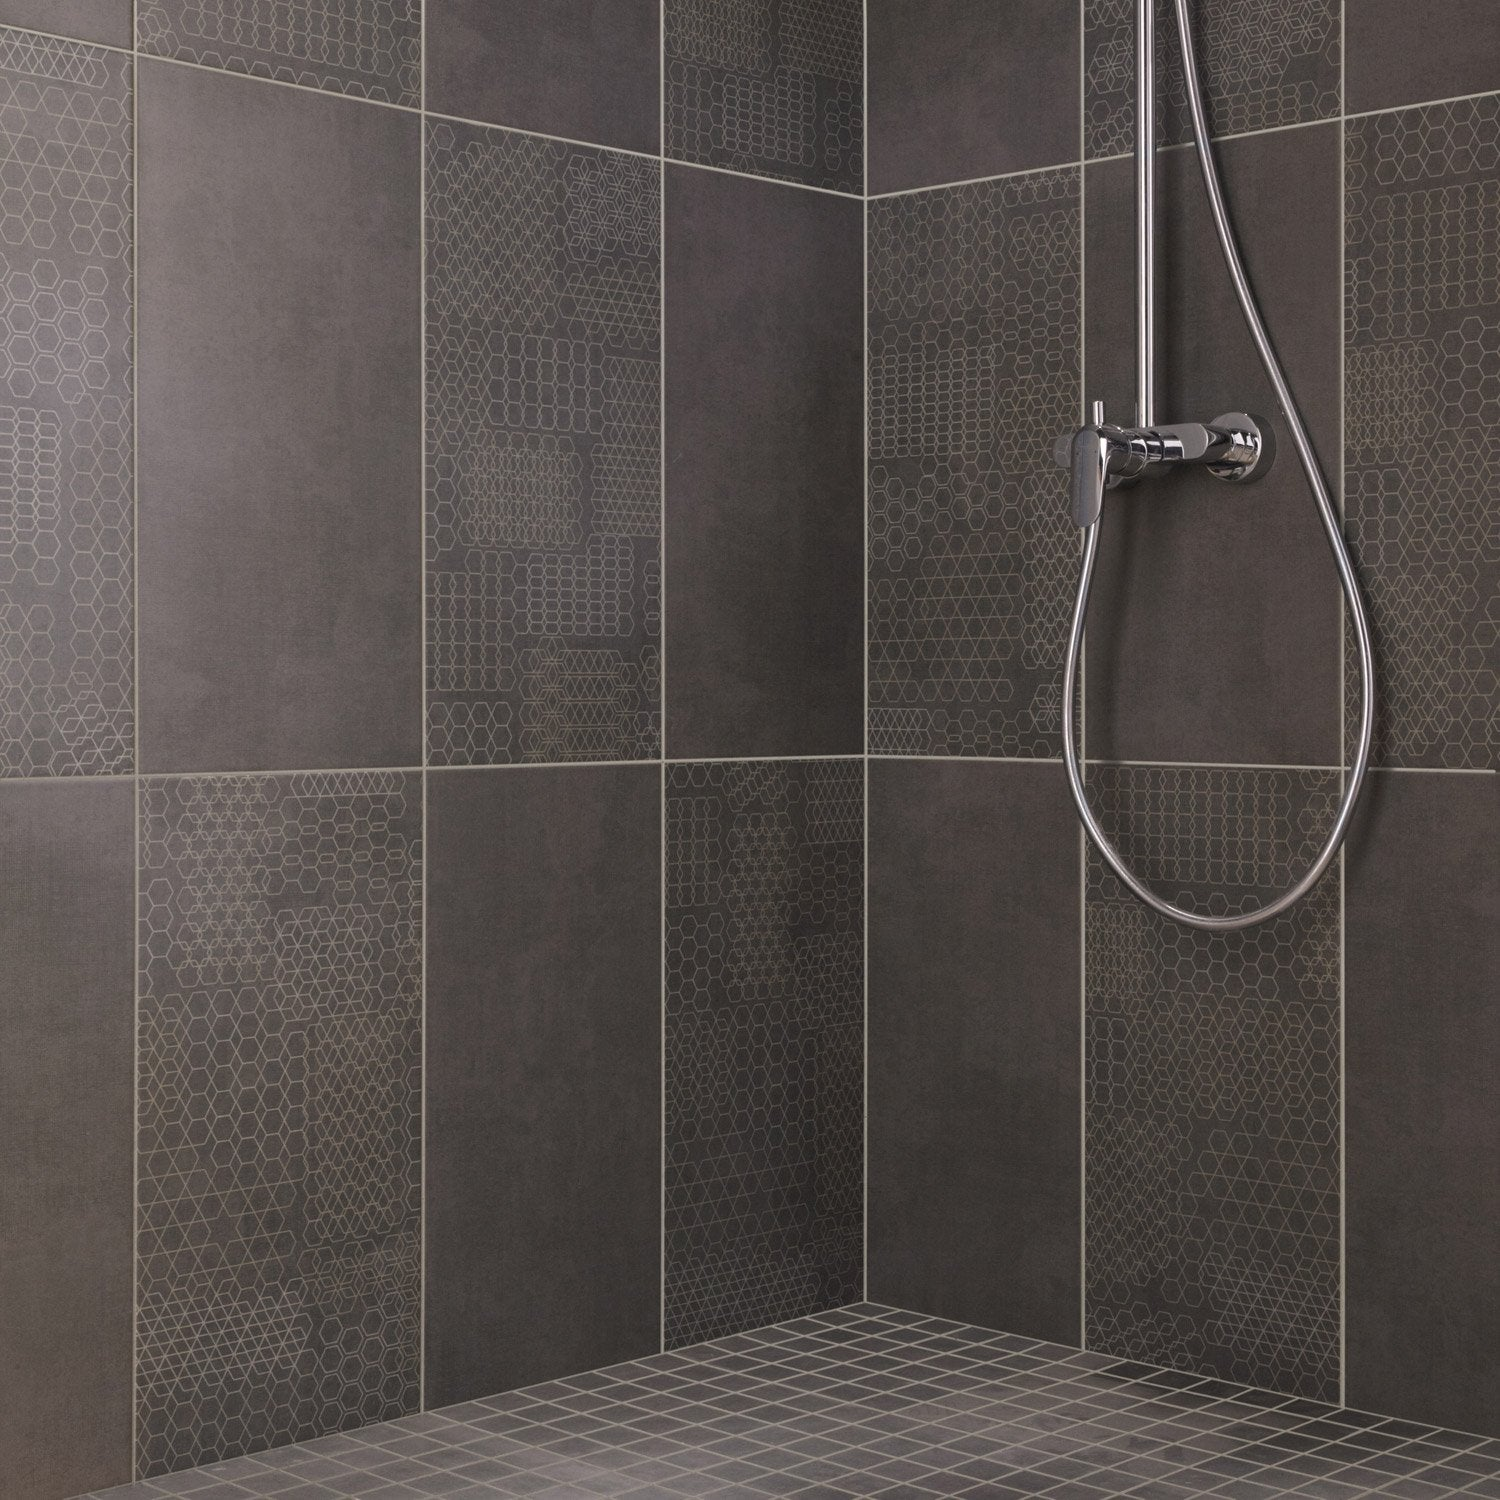 Fa ence mur anthracite tweed x cm leroy merlin for Pose de carrelage mur salle de bain